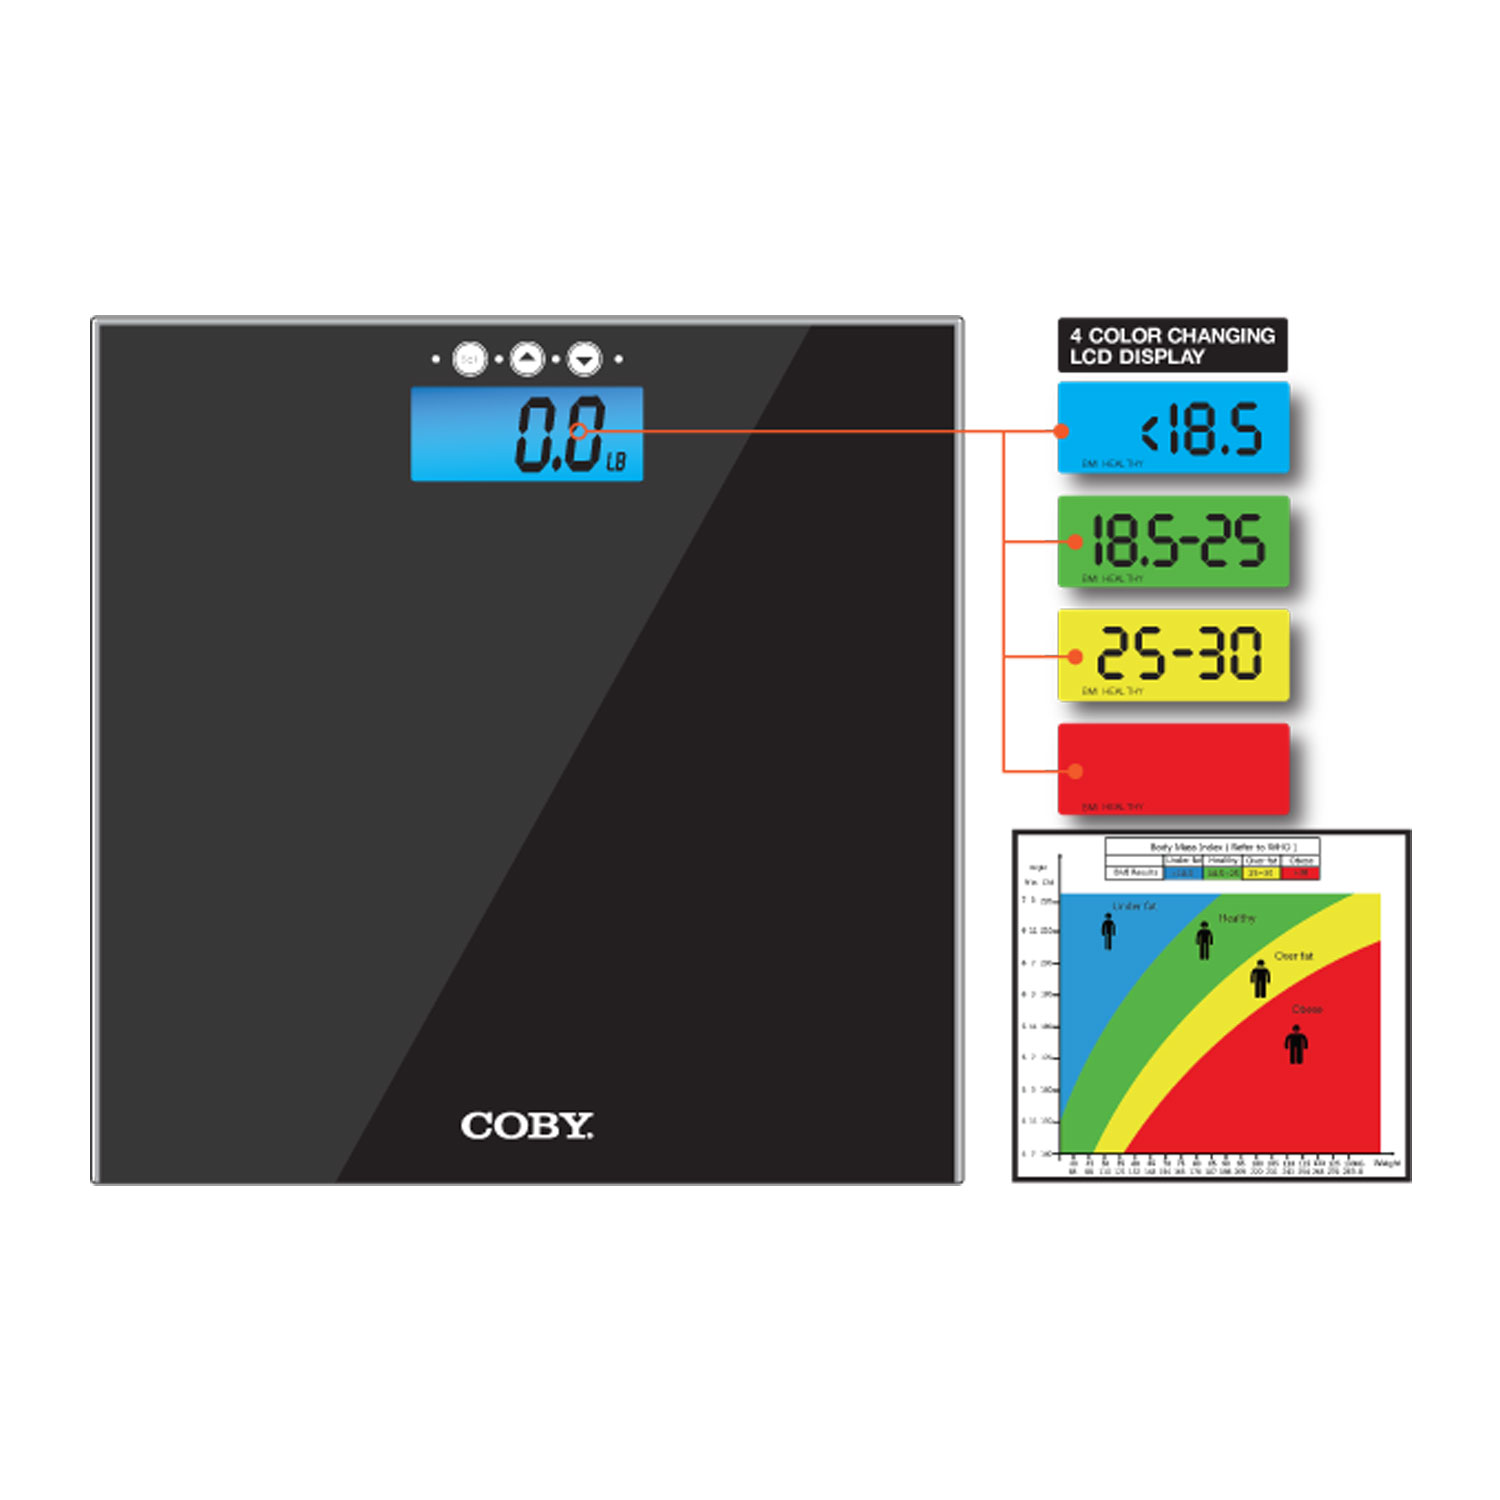 COBY Digital Bathroom Scale with Color Changing LCD Display and BMI Estimator